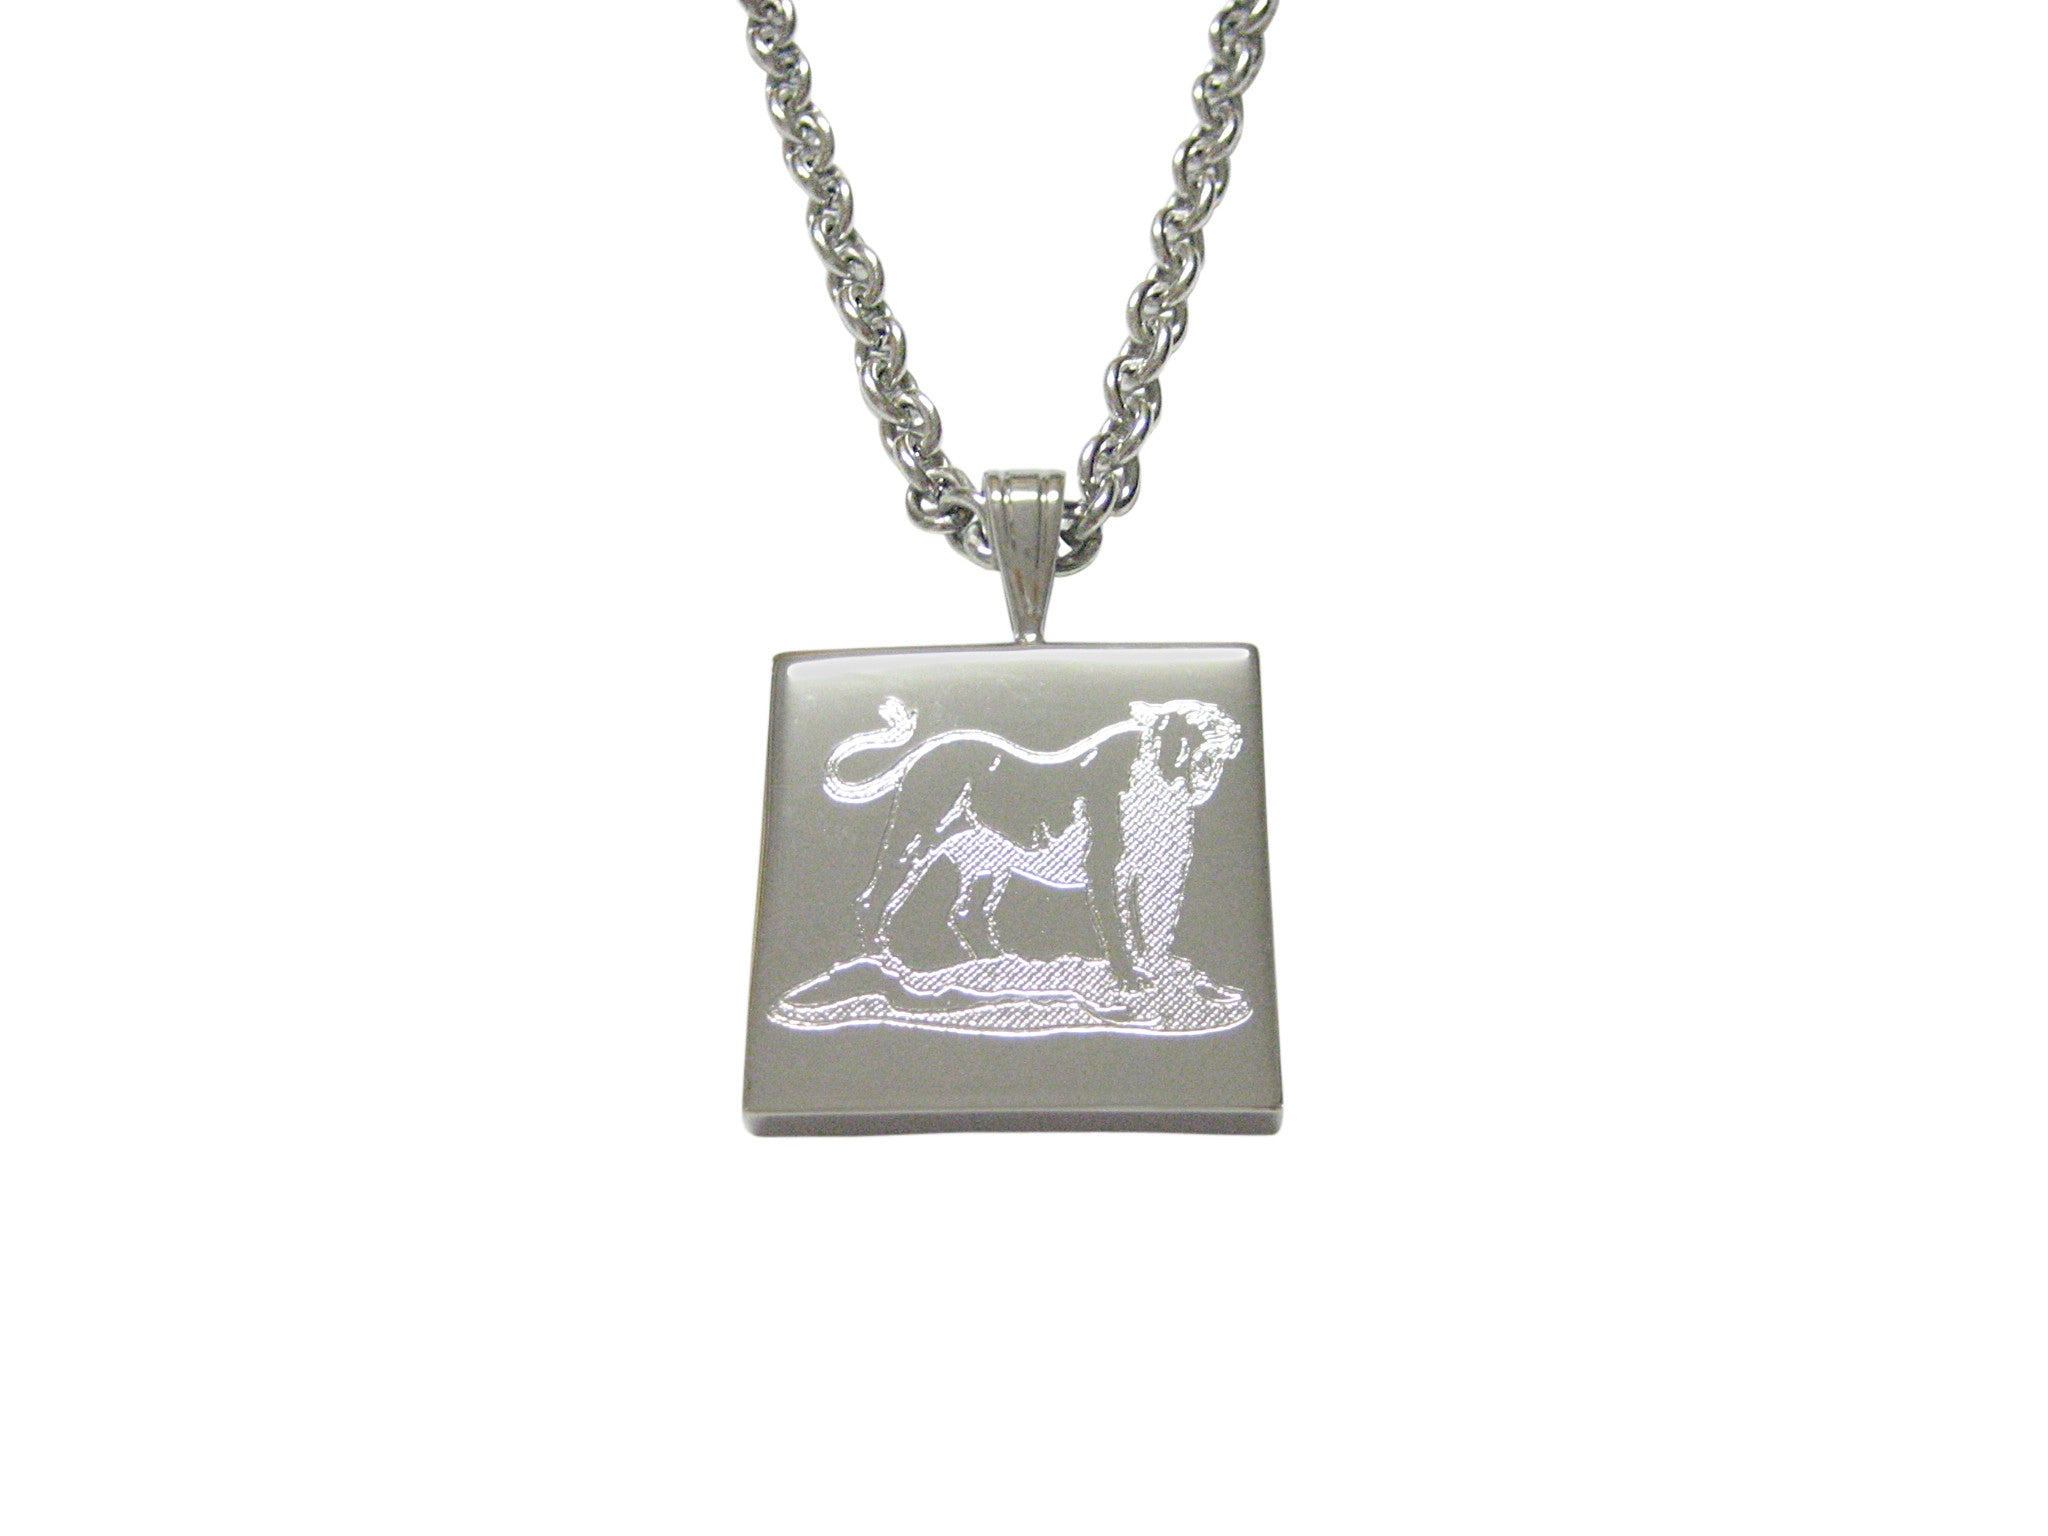 Silver Toned Etched Roaring Lioness Pendant Necklace